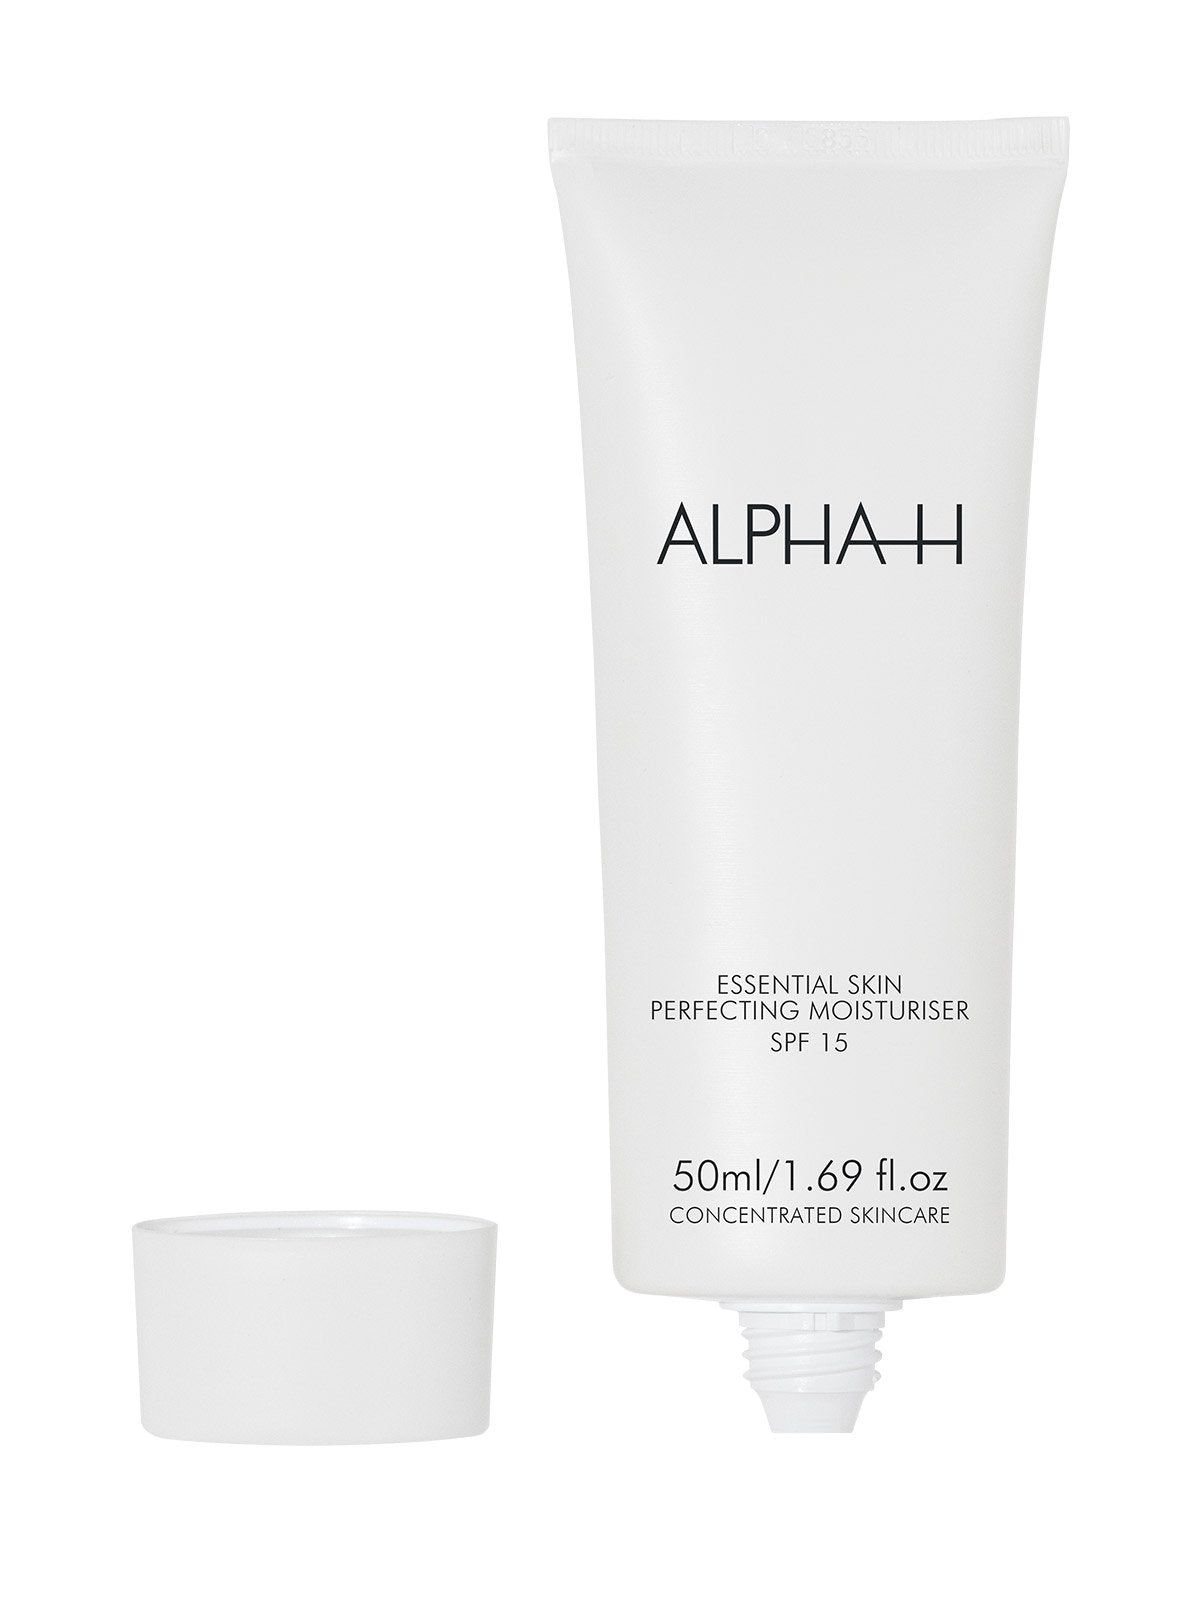 Essential Skin Perfecting Moisturiser with SPF 15